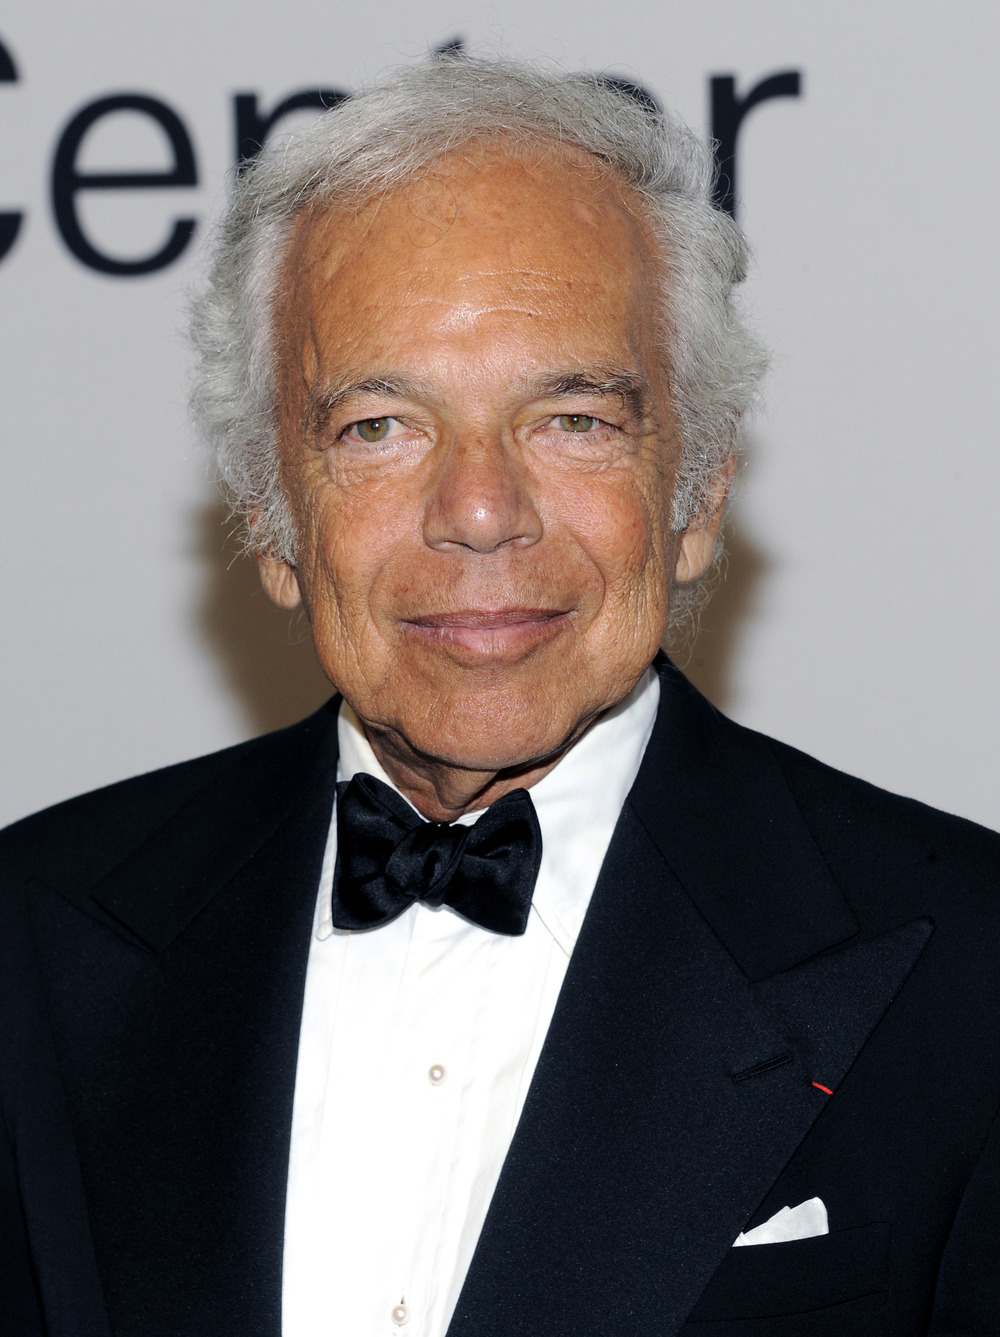 Ralph Lauren. Image via The New York Post.